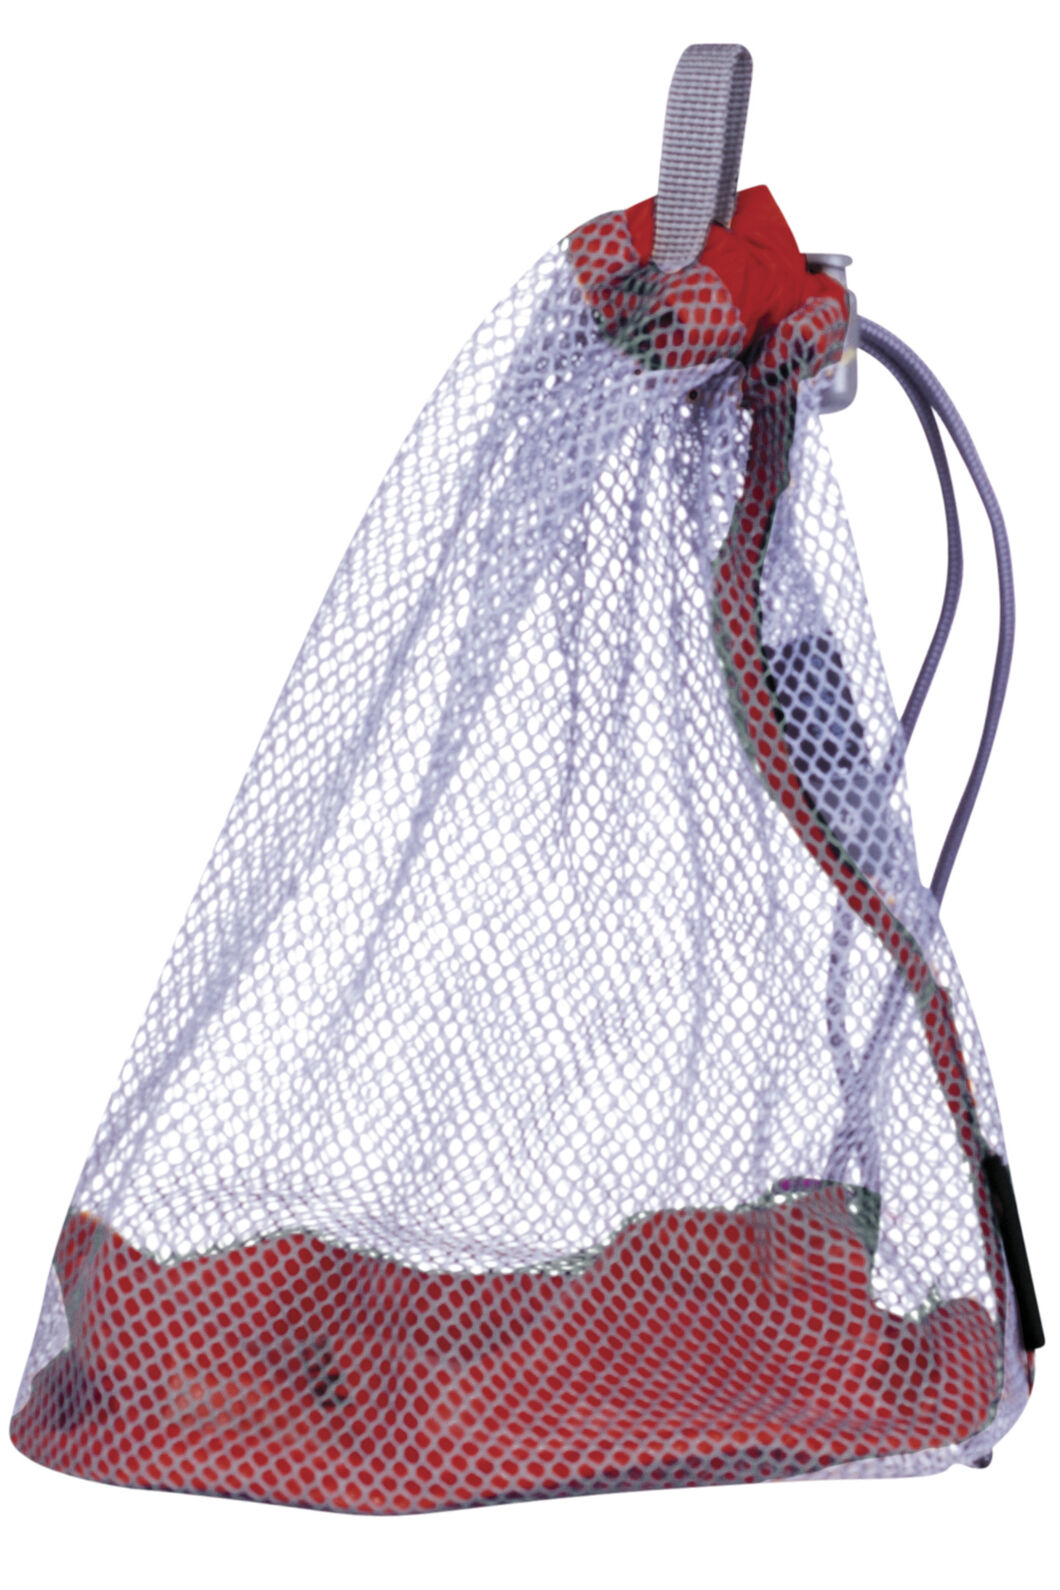 Macpac Mesh Stuff Sack Medium, Scarlet Sage, hi-res